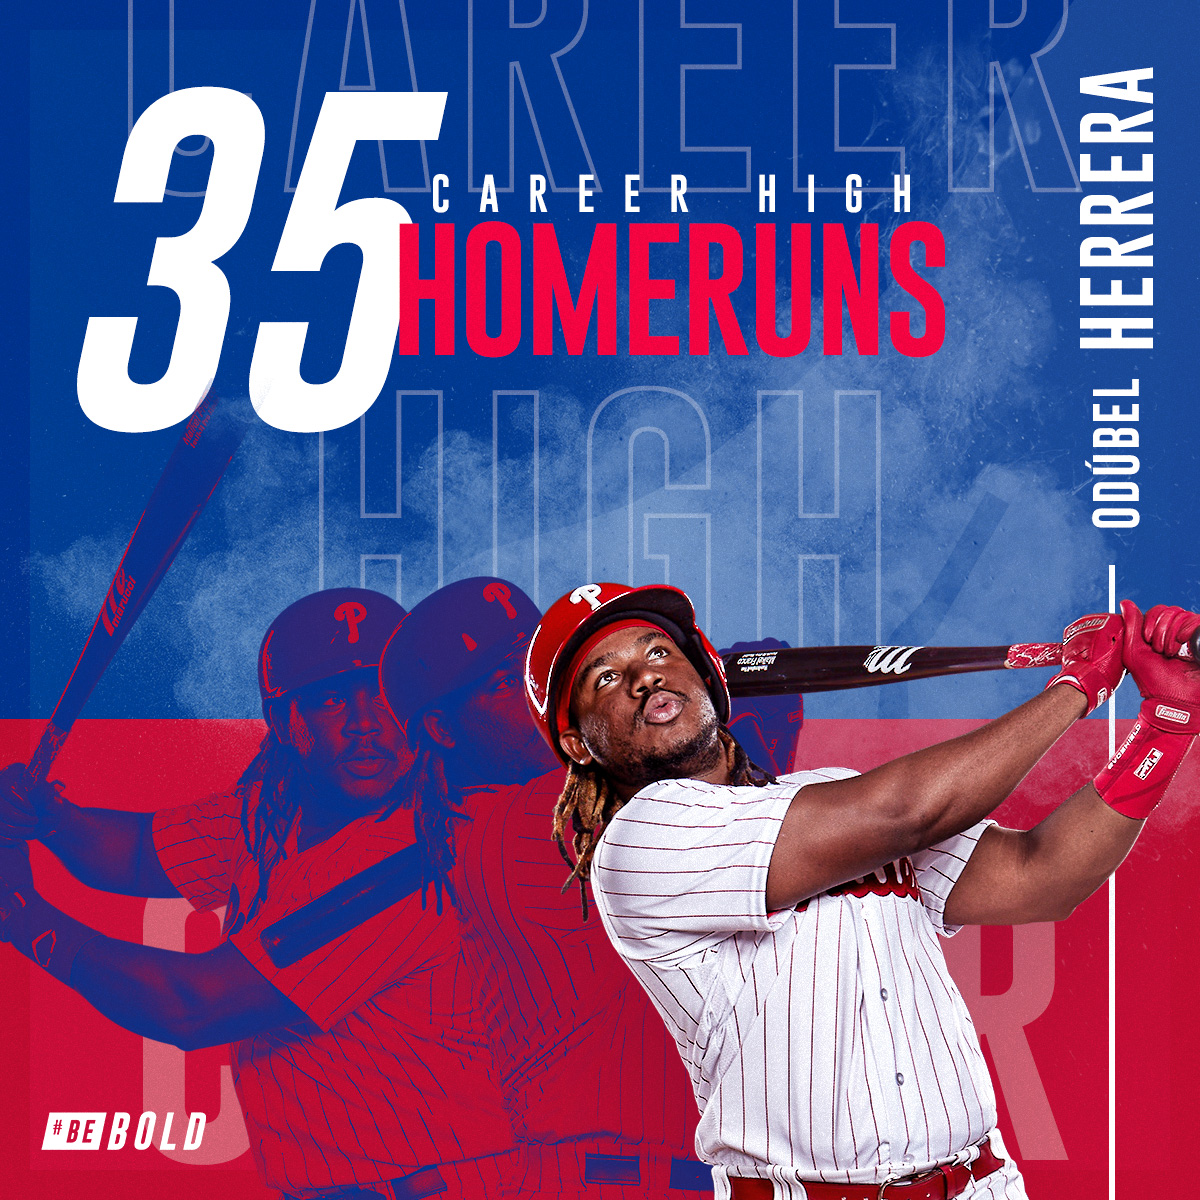 Career HighPhiladelphia-Phillies_Season-Template_Home-Runs_blue_1x1 copy 2.jpg